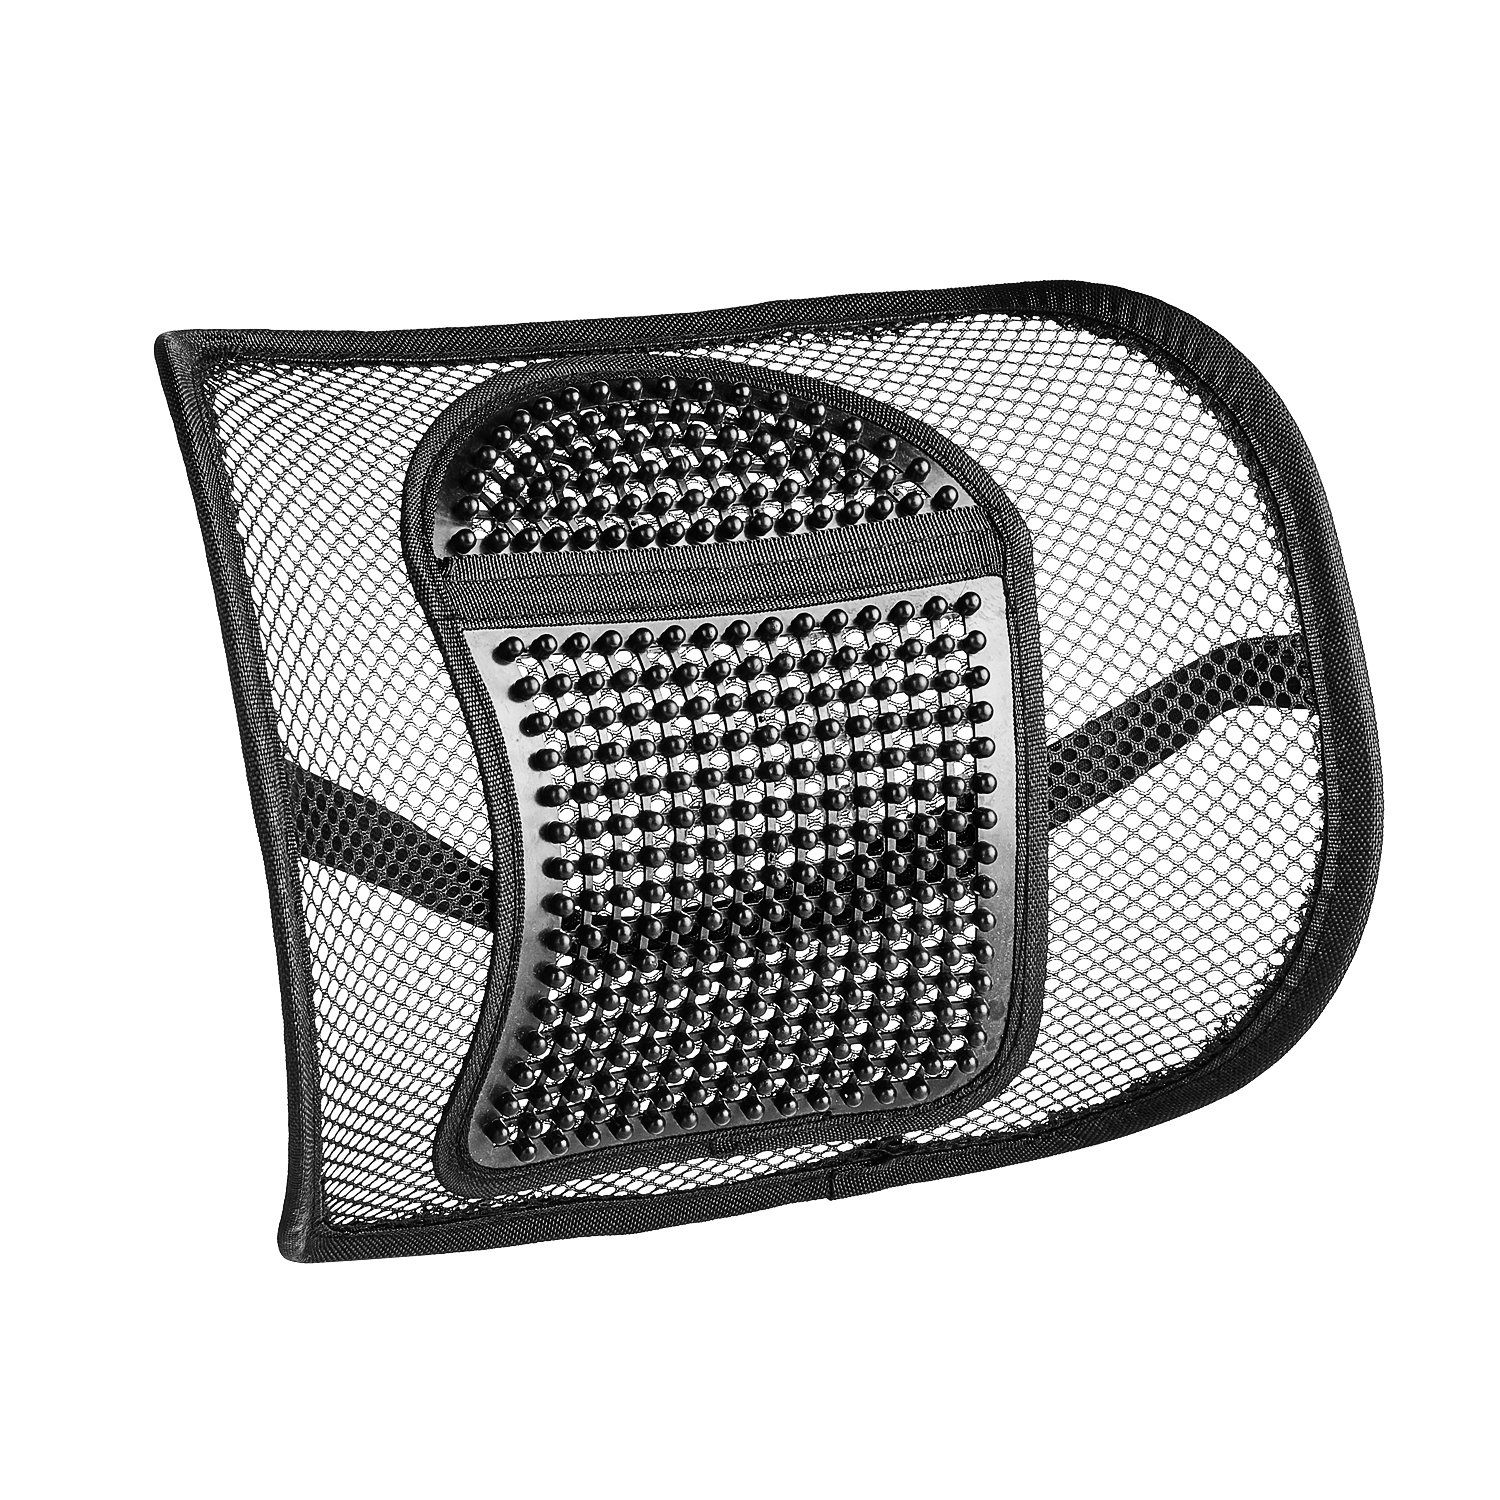 Sermicle Lumbar Support Mesh Vekey Back Support Mesh Back Cushion Breathable Comfortable Adjustable For All Types Car Seat Office Chair Pp Fiber Mesh Standard